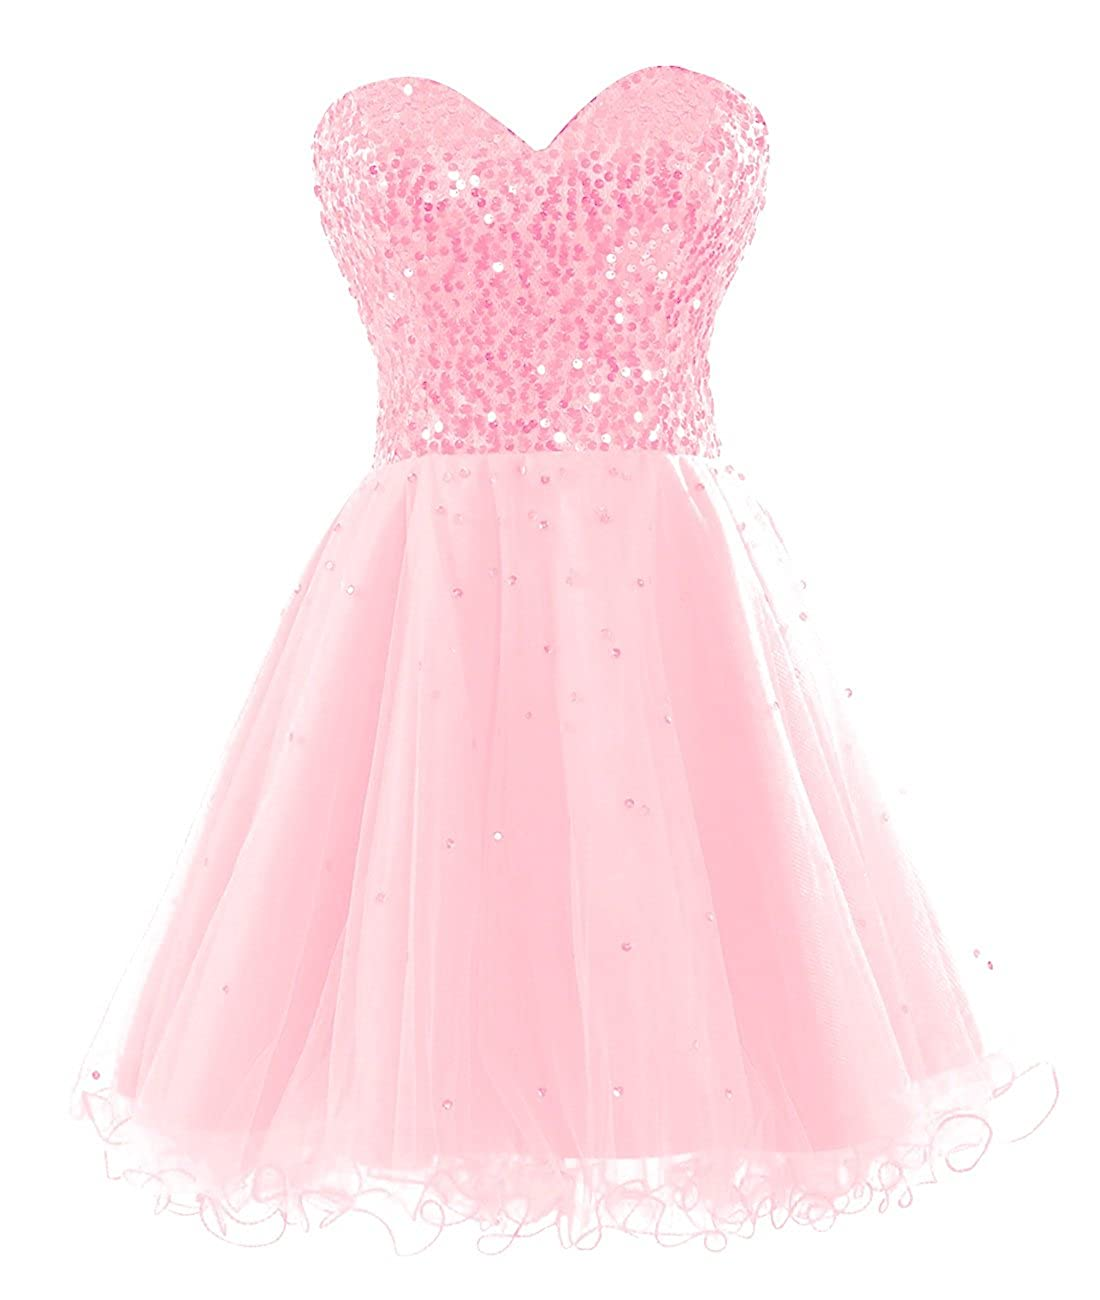 blueshing Pink Bess Bridal Women's Sequined Lace Up Tulle Short Prom Homecoming Dresses